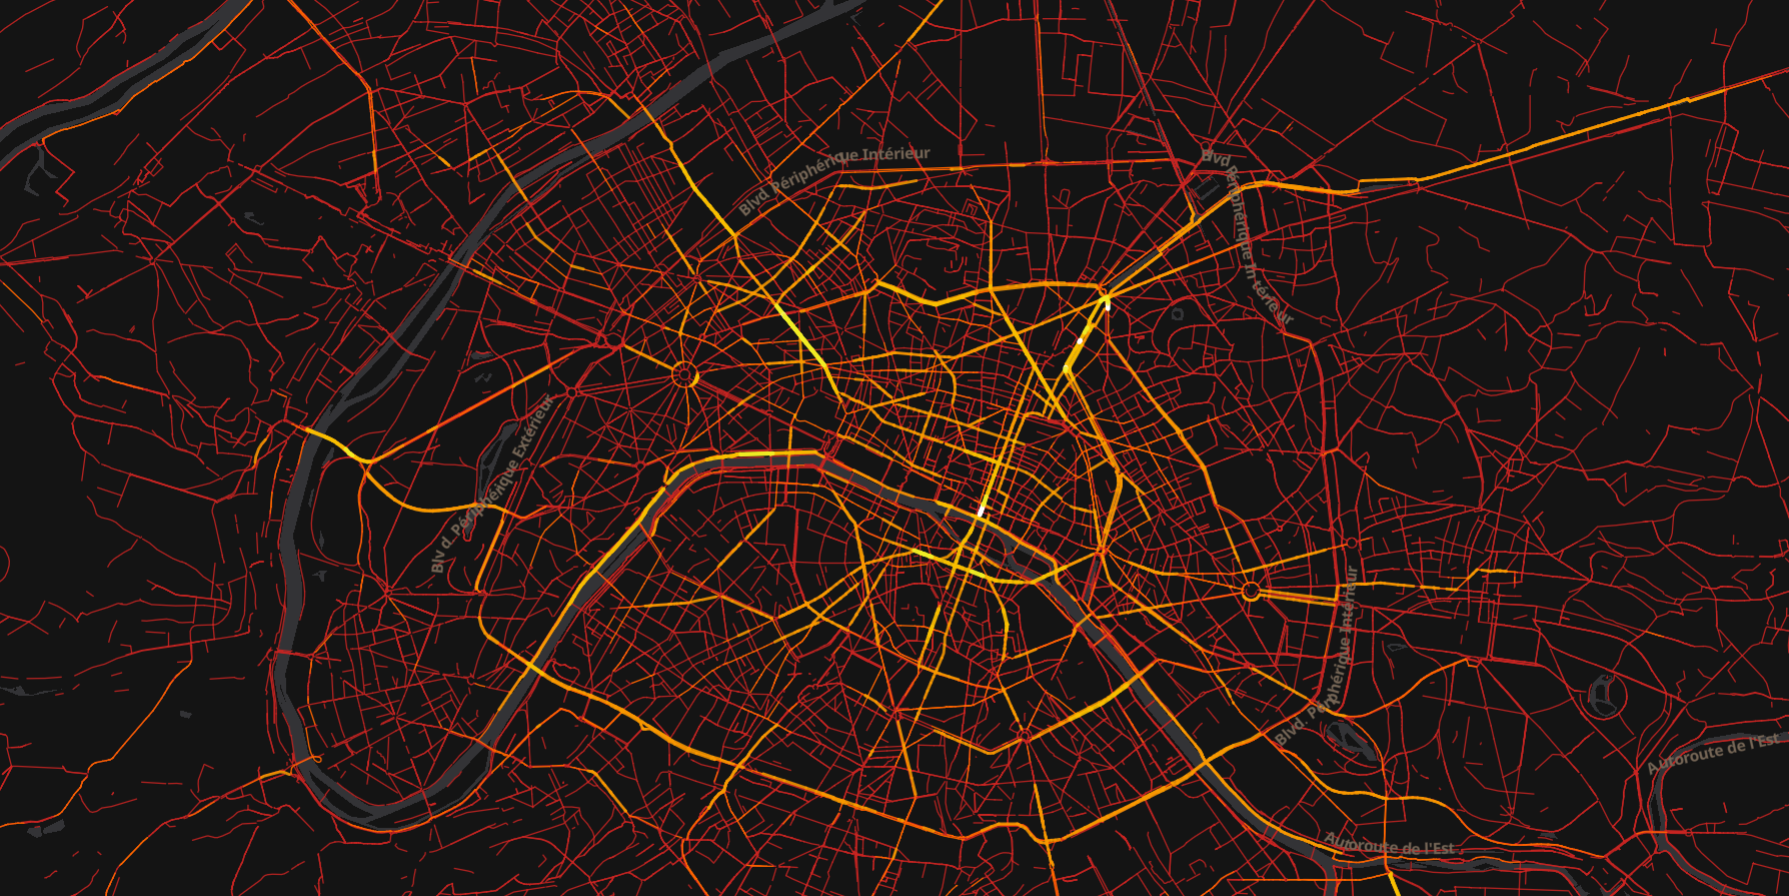 Heatmap de Paris